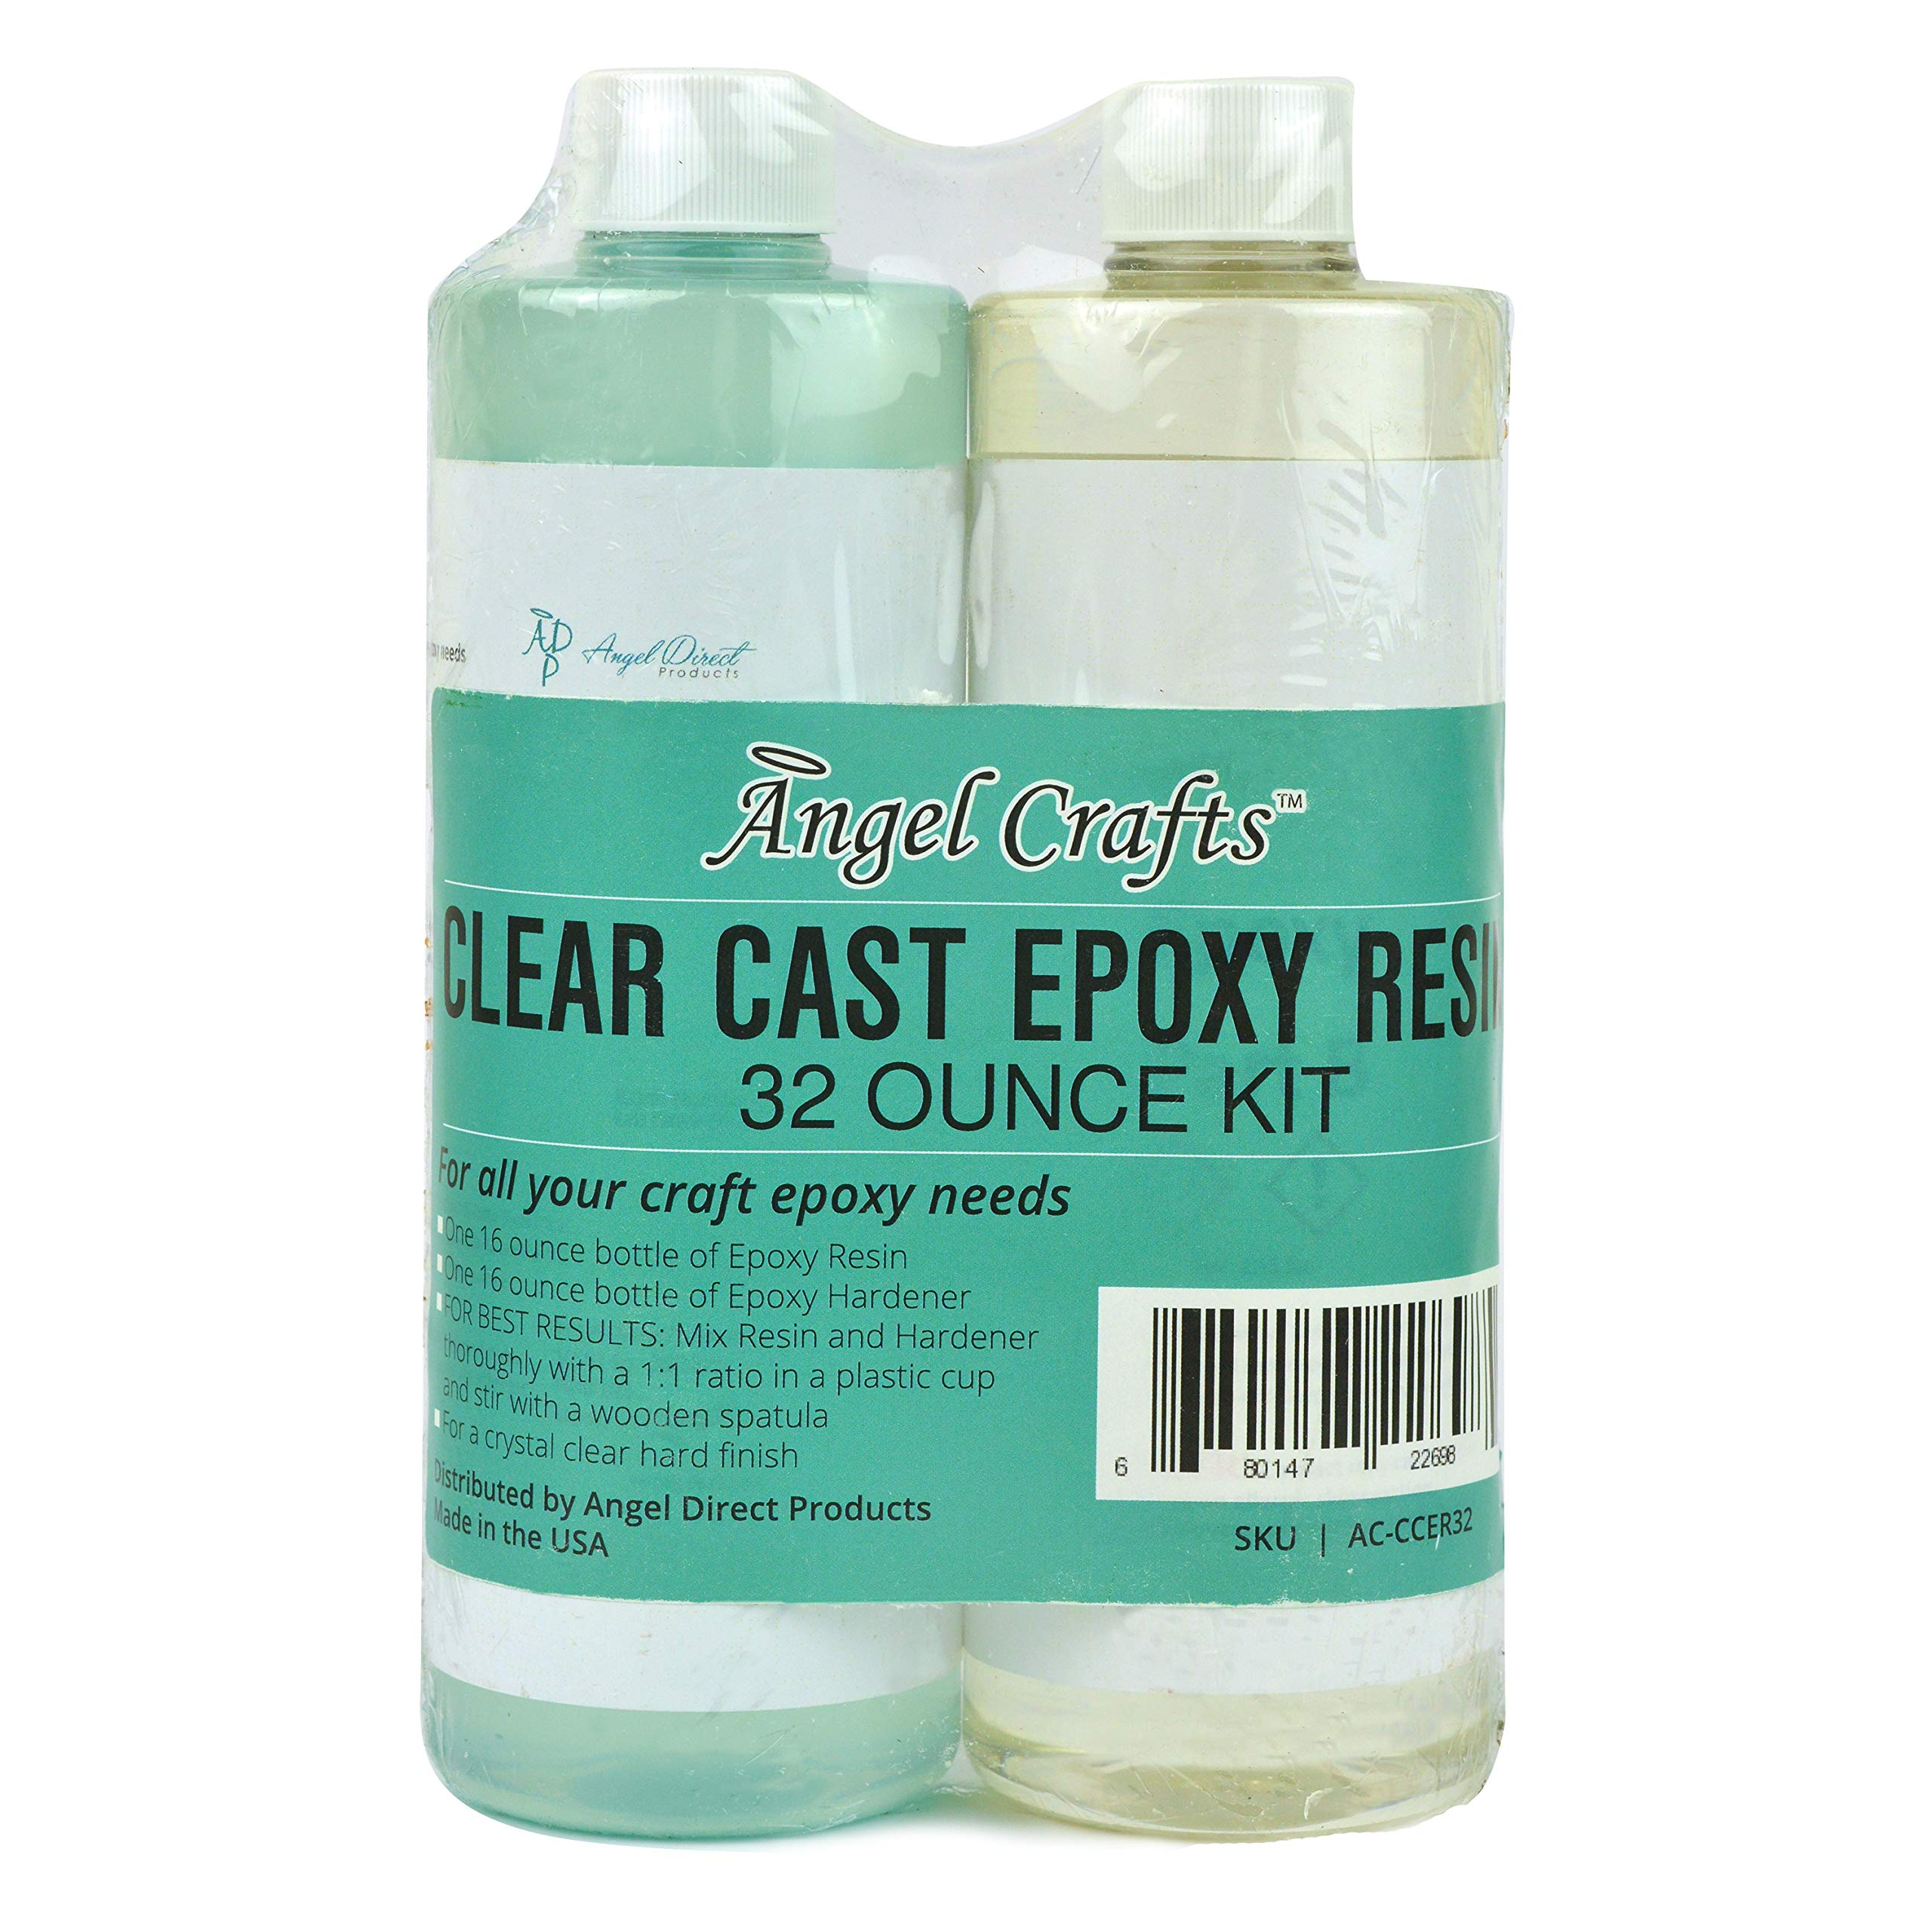 Angel Crafts Clear Casting Epoxy Resin and Hardener Mix Kit: Clear Resin for Craft Art, Jewelry, Wood Table Tops, Molds, Dyes, Color Pigments, Buttons, UV Protection Cast Coating Formula, 32 Ounces